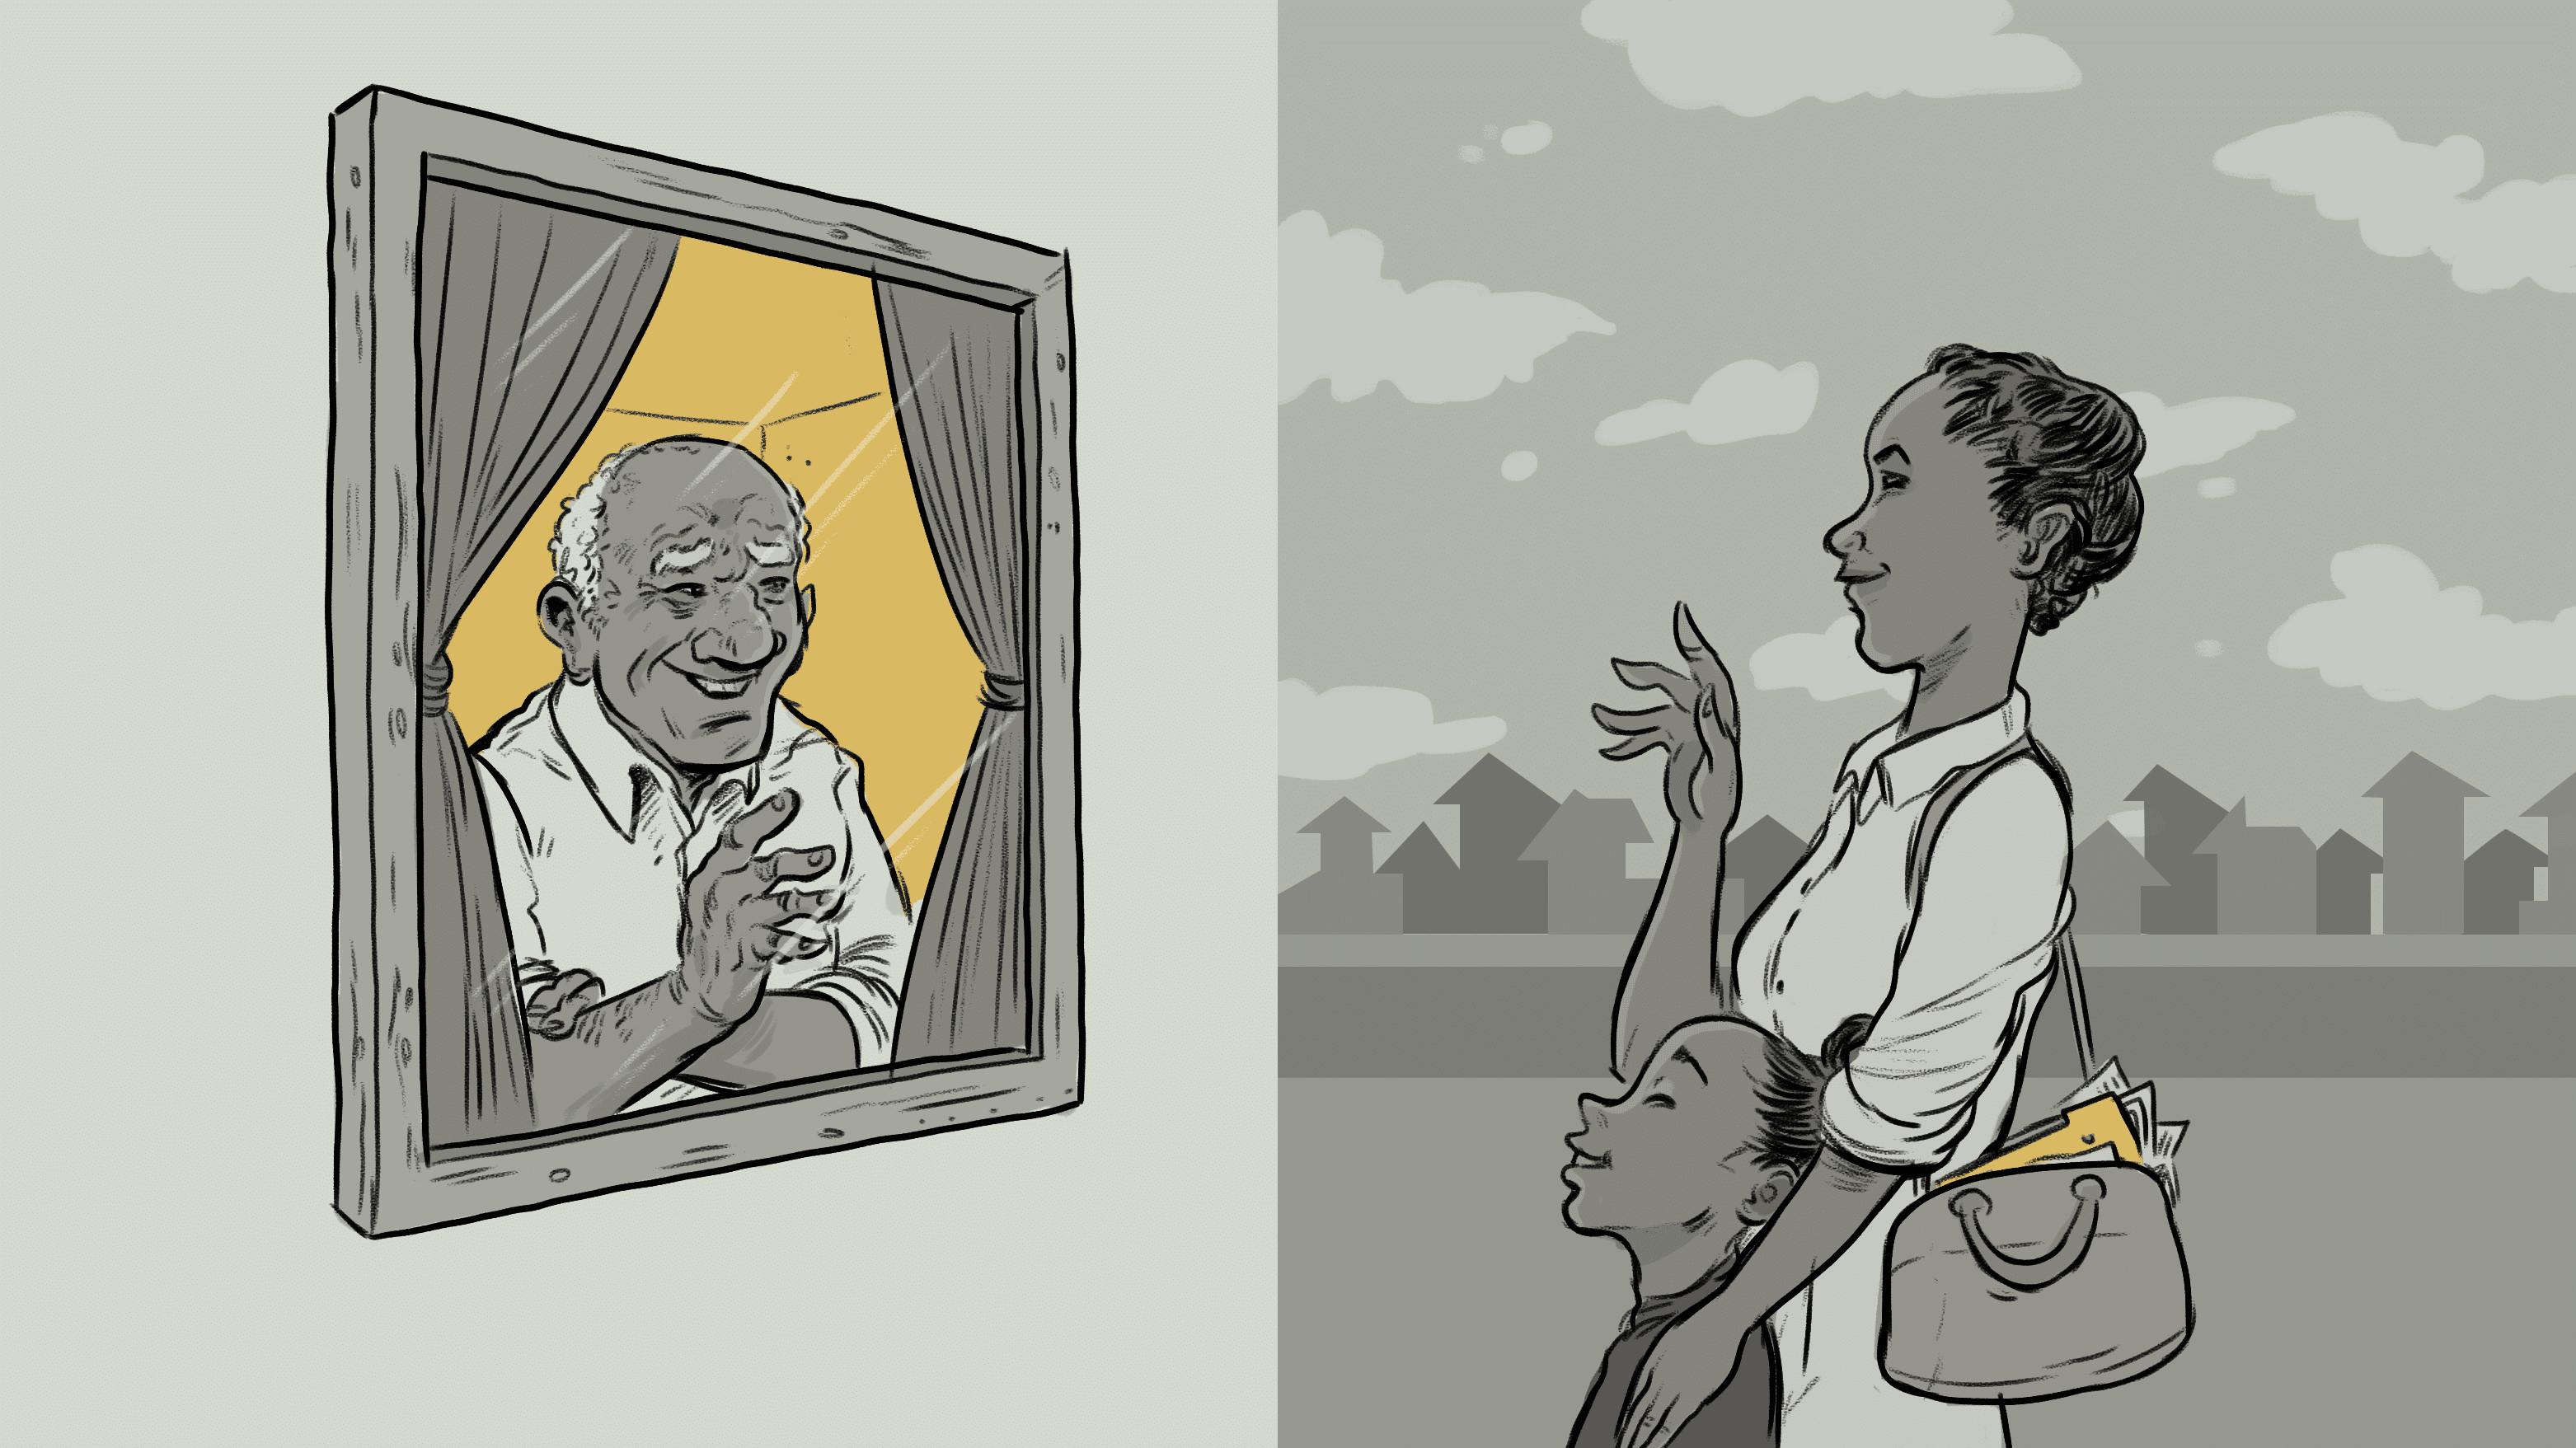 illustration of an elderly man looking out the window to his family